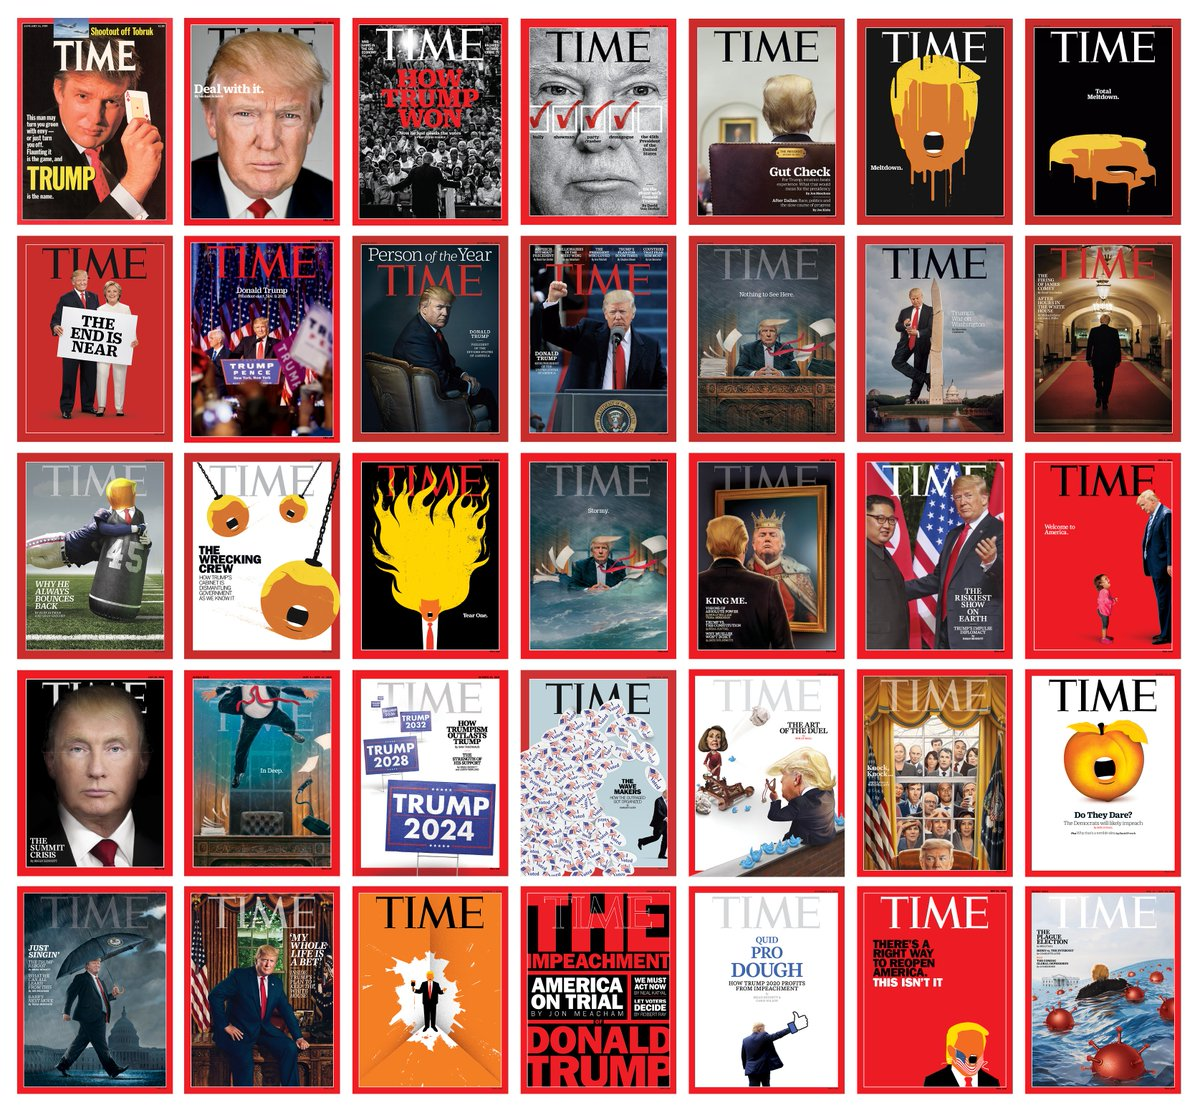 Read the story behind TIME's Donald Trump covers - he leaves office with the 4th most all-time with 35 covers https://t.co/cPZsqCQ3an https://t.co/y9l7AMUvfI